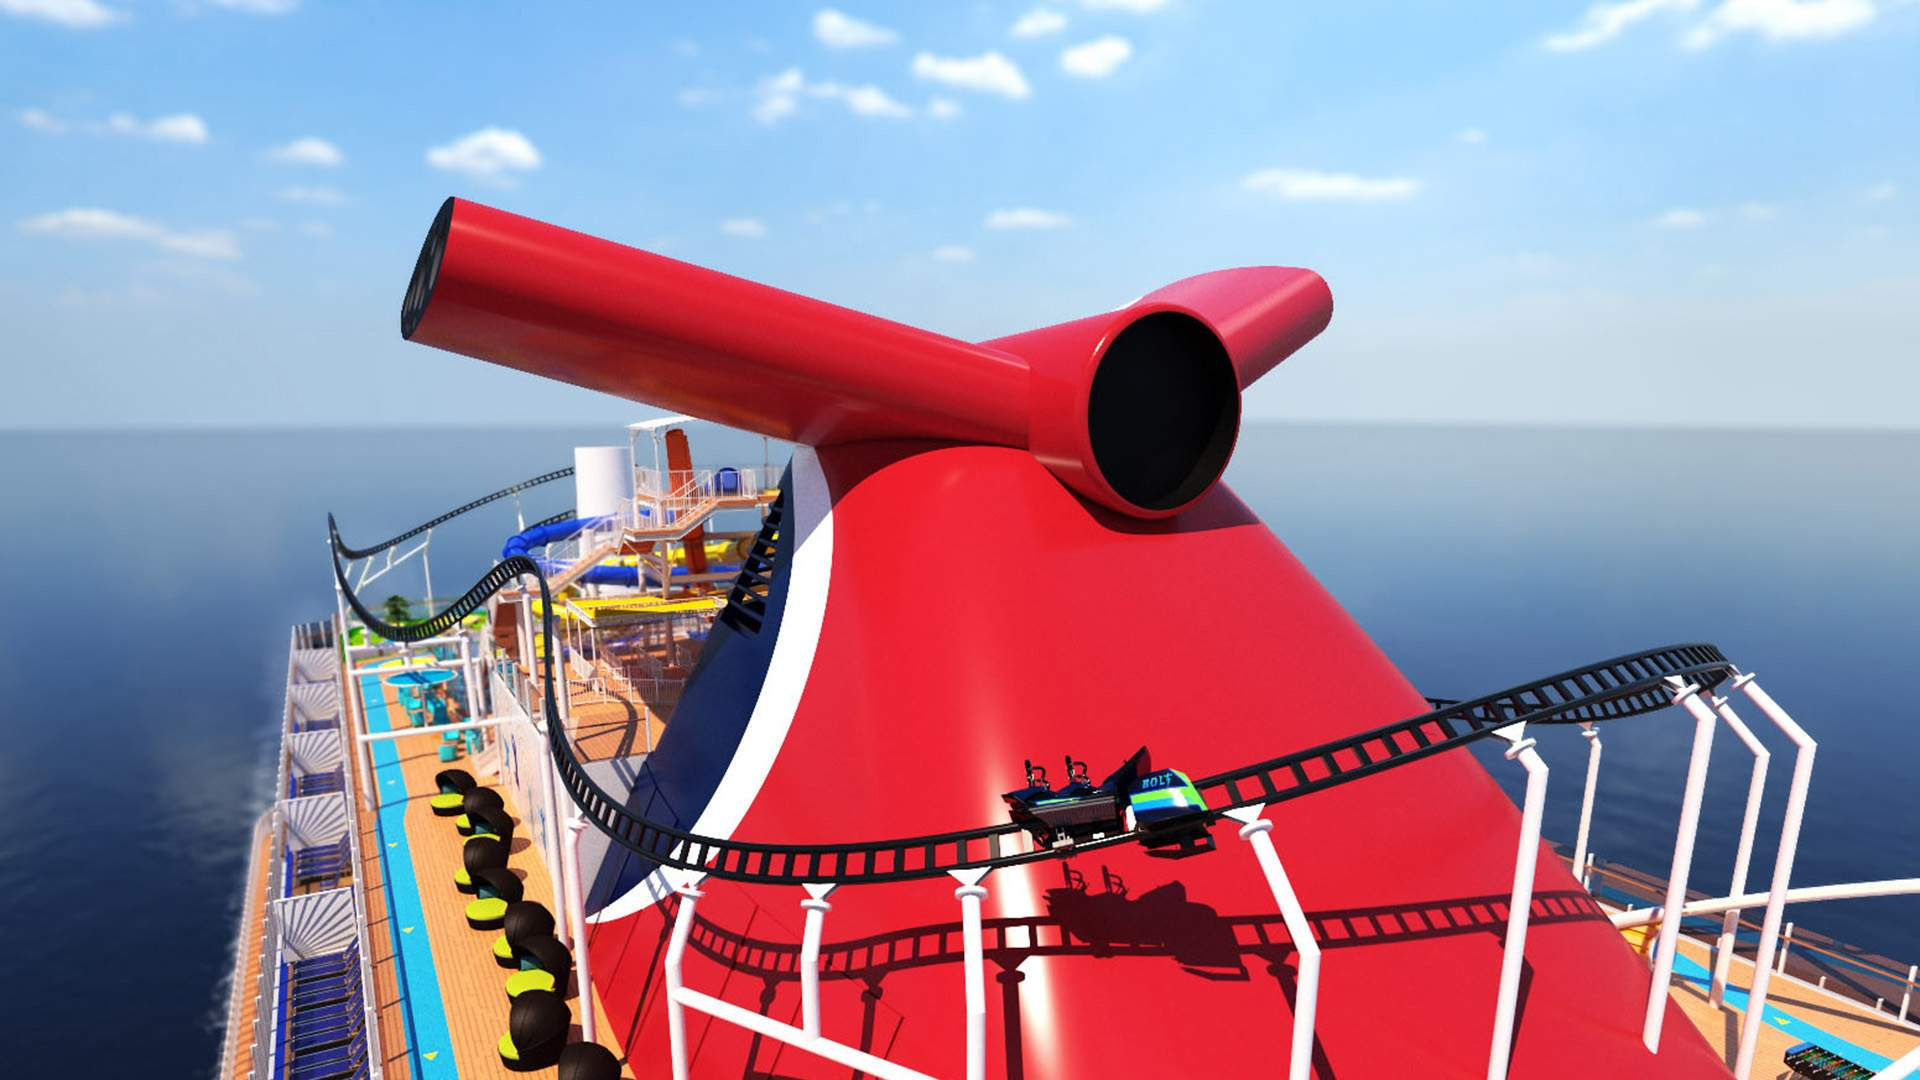 You'll Soon Be Able to Sail on the World's First Cruise Ship with an Onboard Roller Coaster